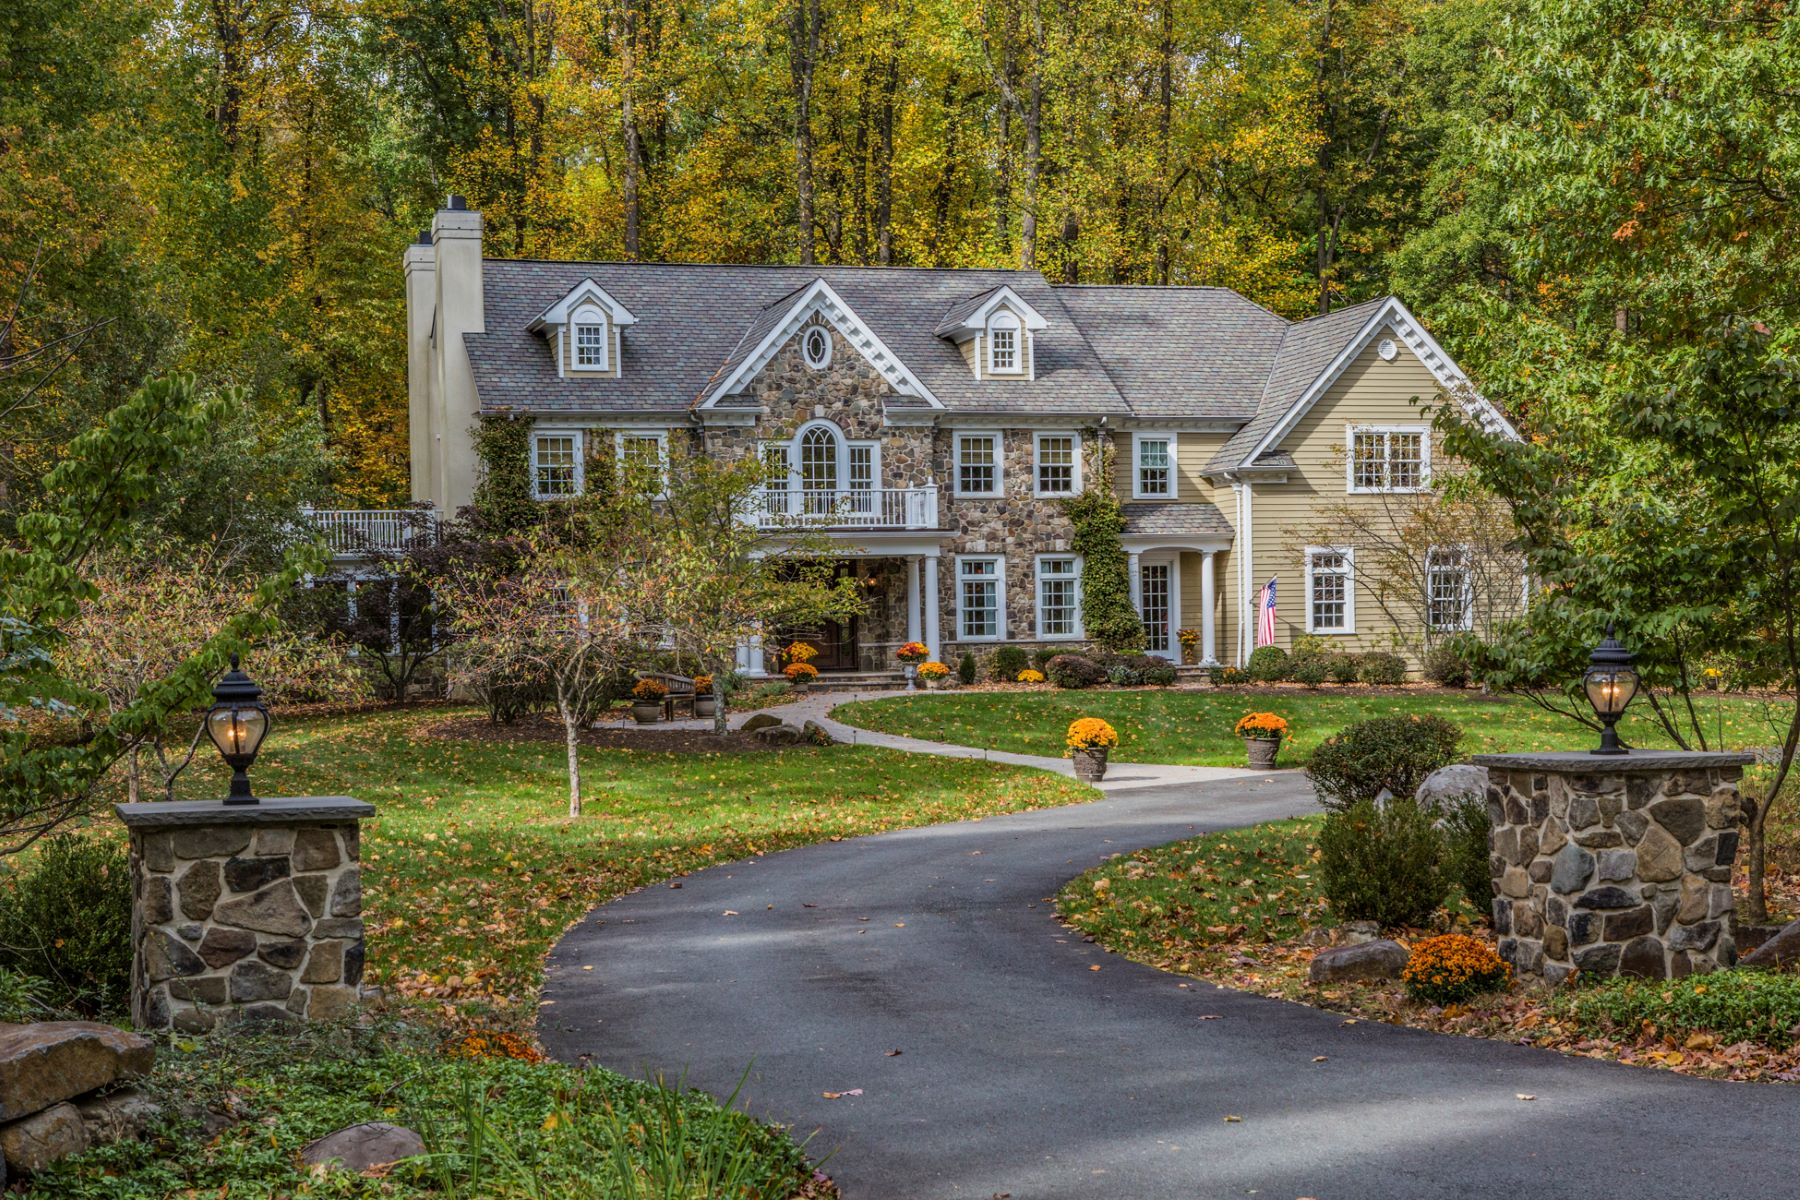 Villa per Vendita alle ore Spacious and Gracious in Princeton 20 Hageman Lane Princeton, New Jersey, 08540 Stati Uniti